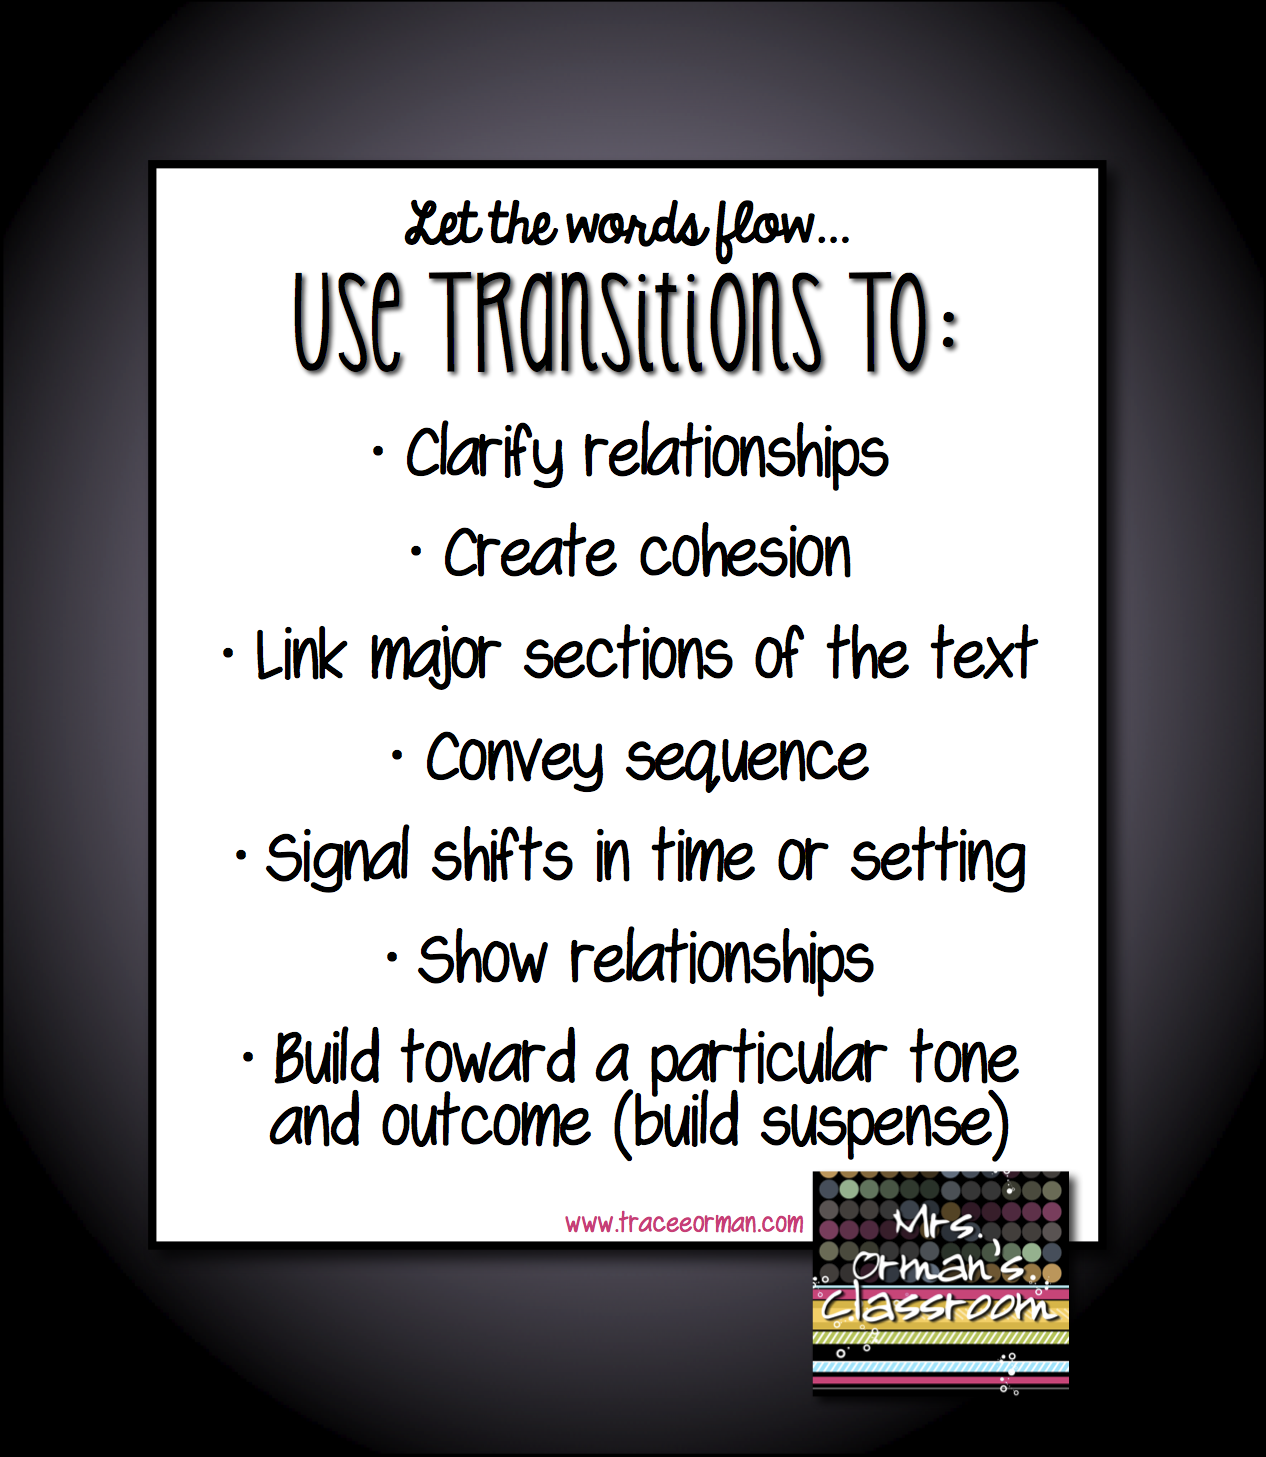 mrs orman s classroom common core tips using transitional words use transitions anchor chart com